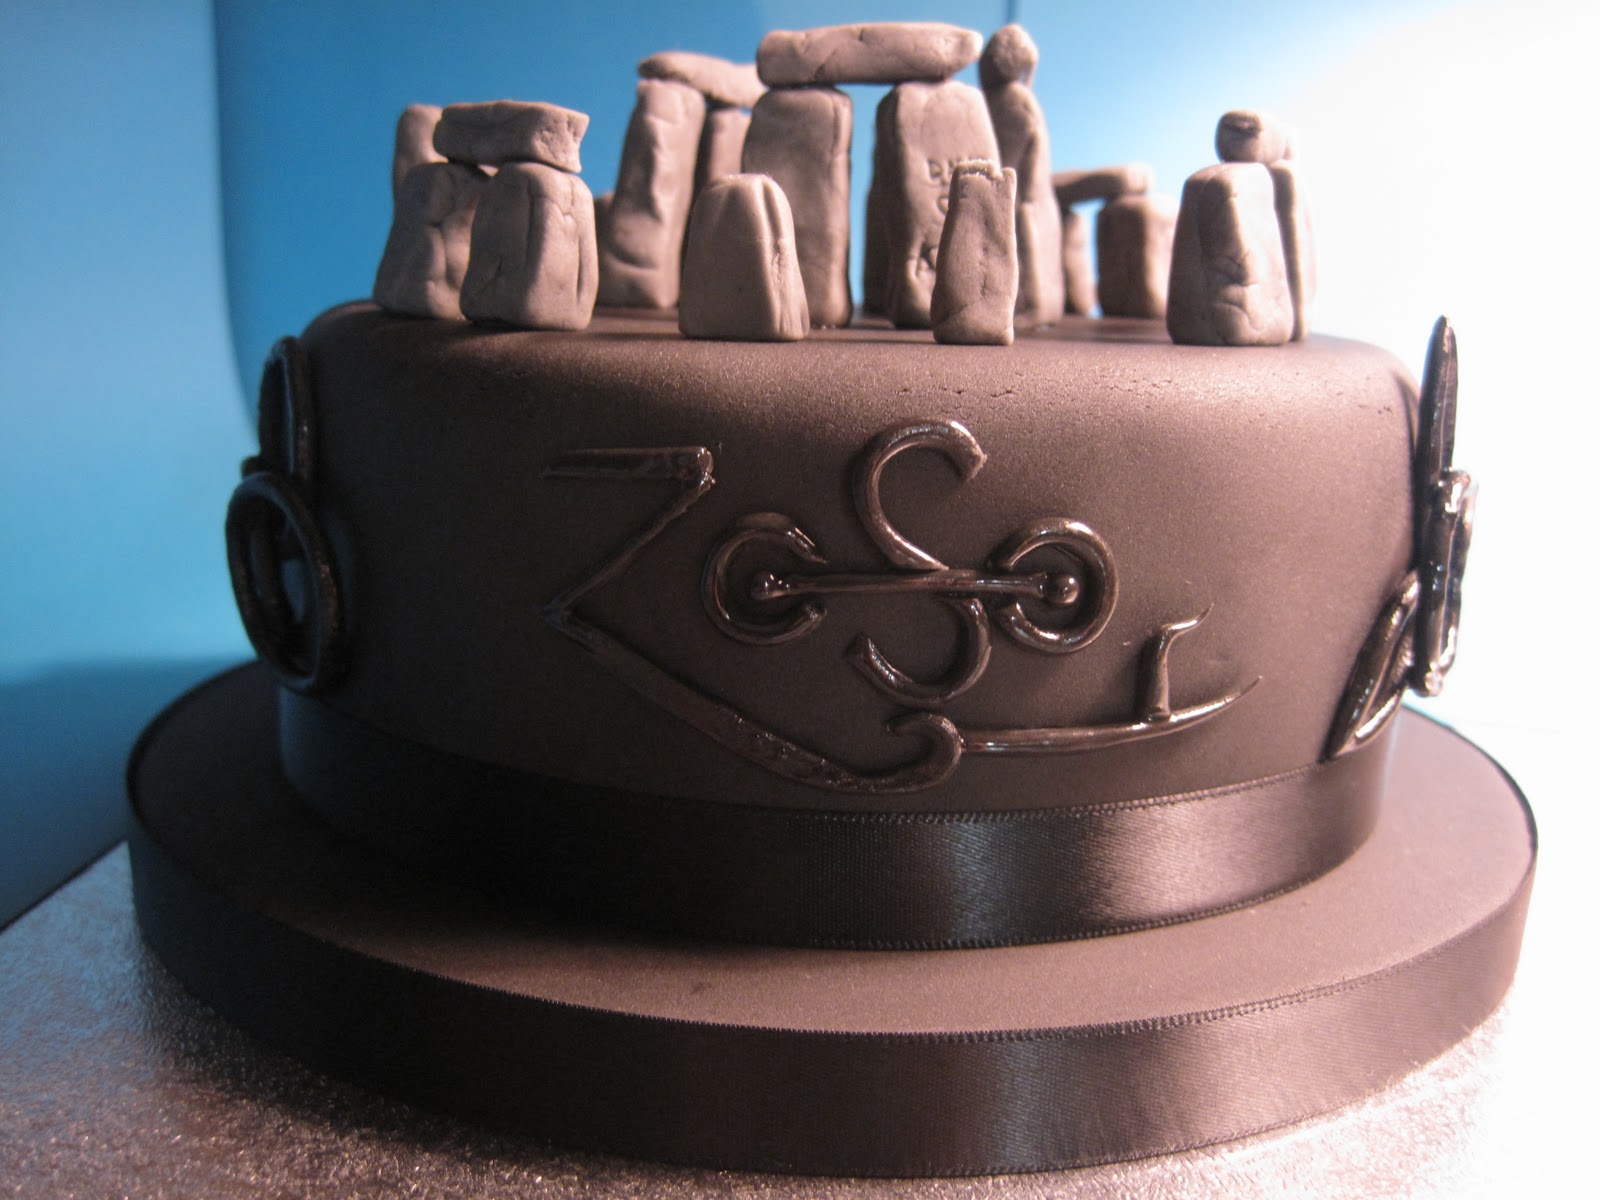 Led Zeppelin Music Theme Customised Cakes Cupcakes Mumbai